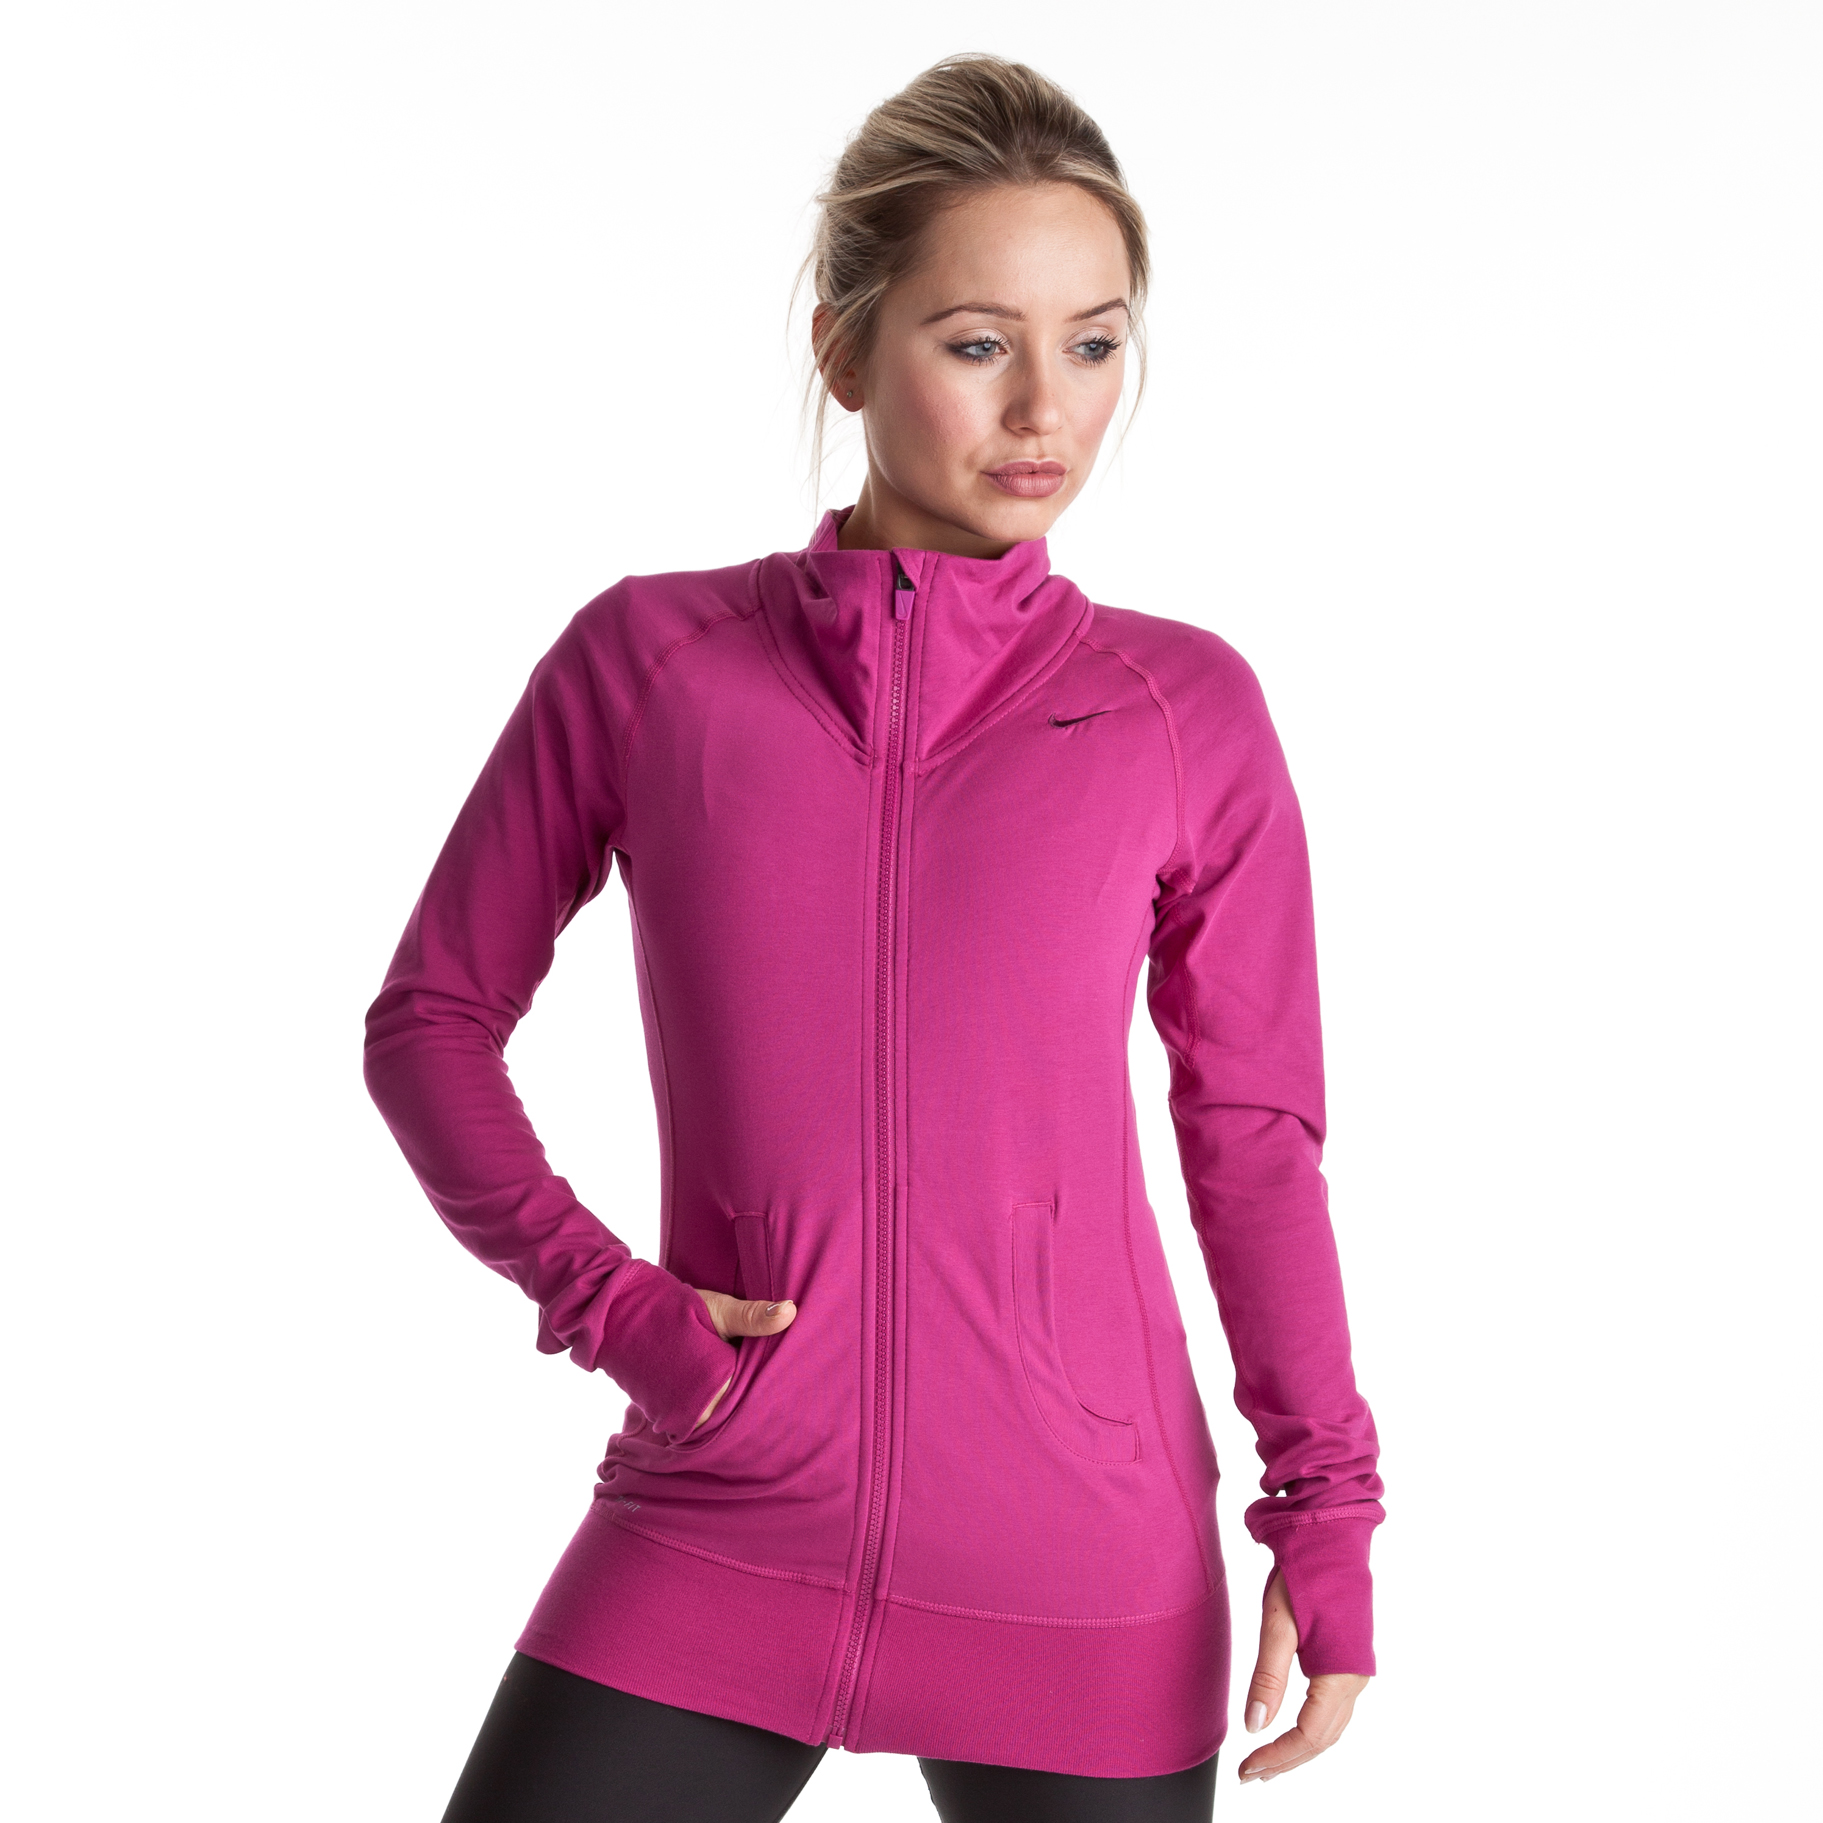 Nike Dry Fit Empire Jacket - Rave Pink/Bordeaux - Womens